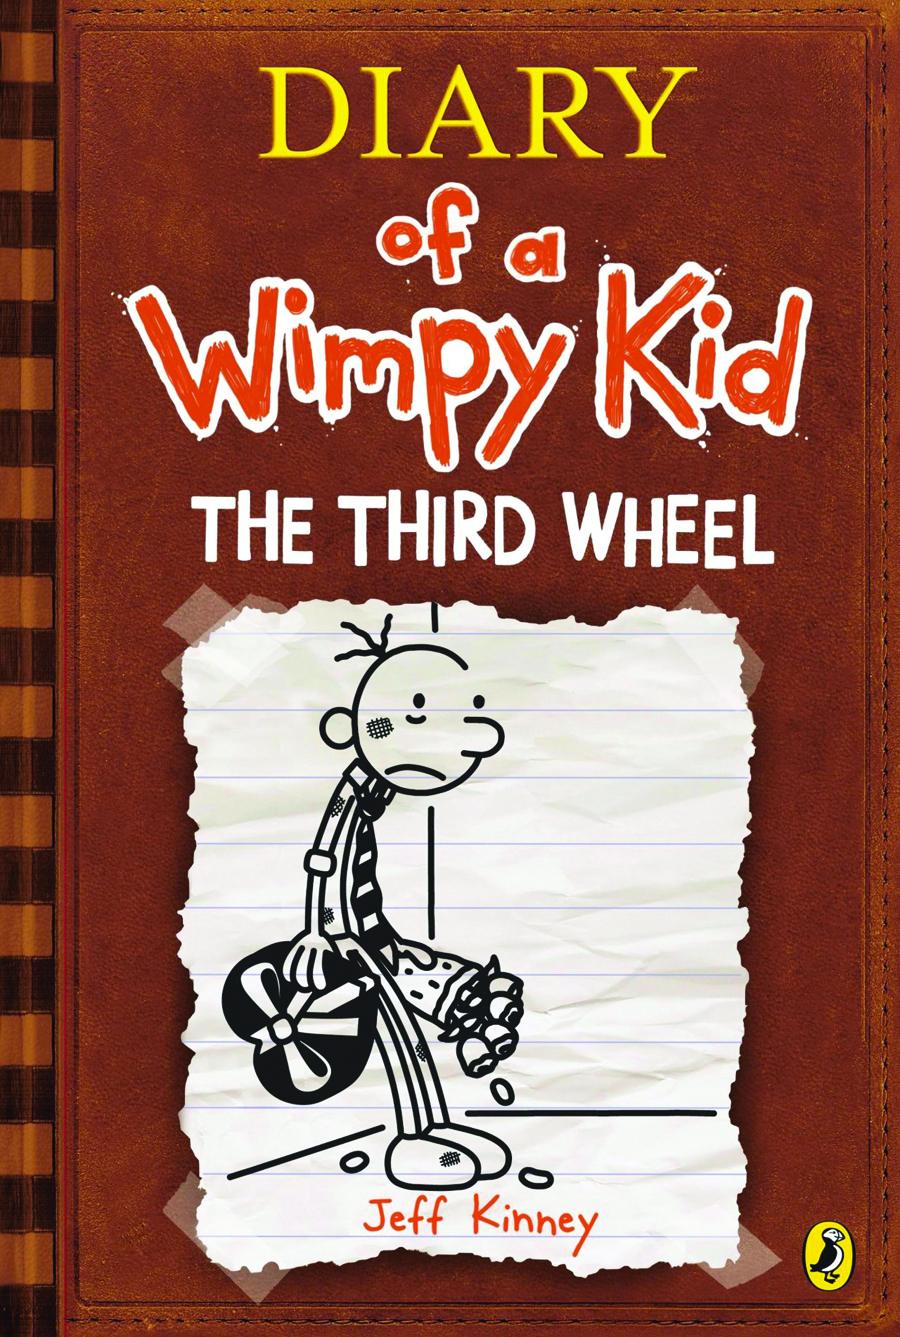 DIARY OF A WIMPY KID HC VOL 07 THIRD WHEEL